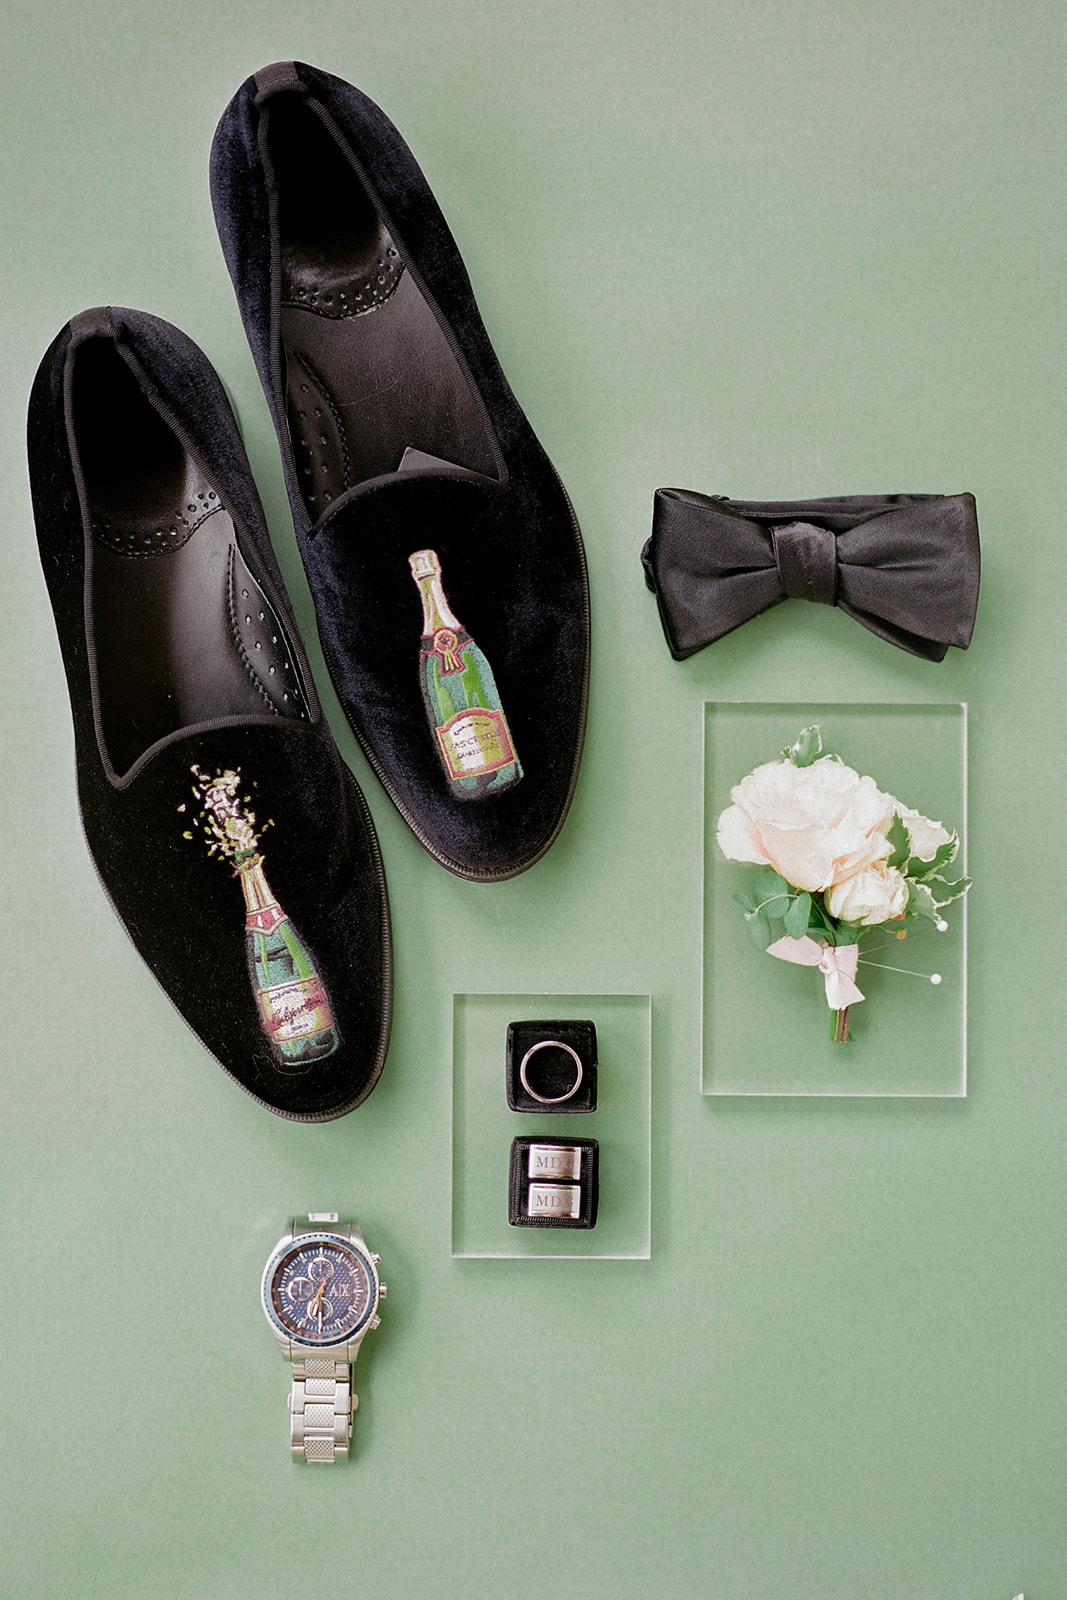 champagne bottles embroidered onto black velvet shoes with grooms accesories